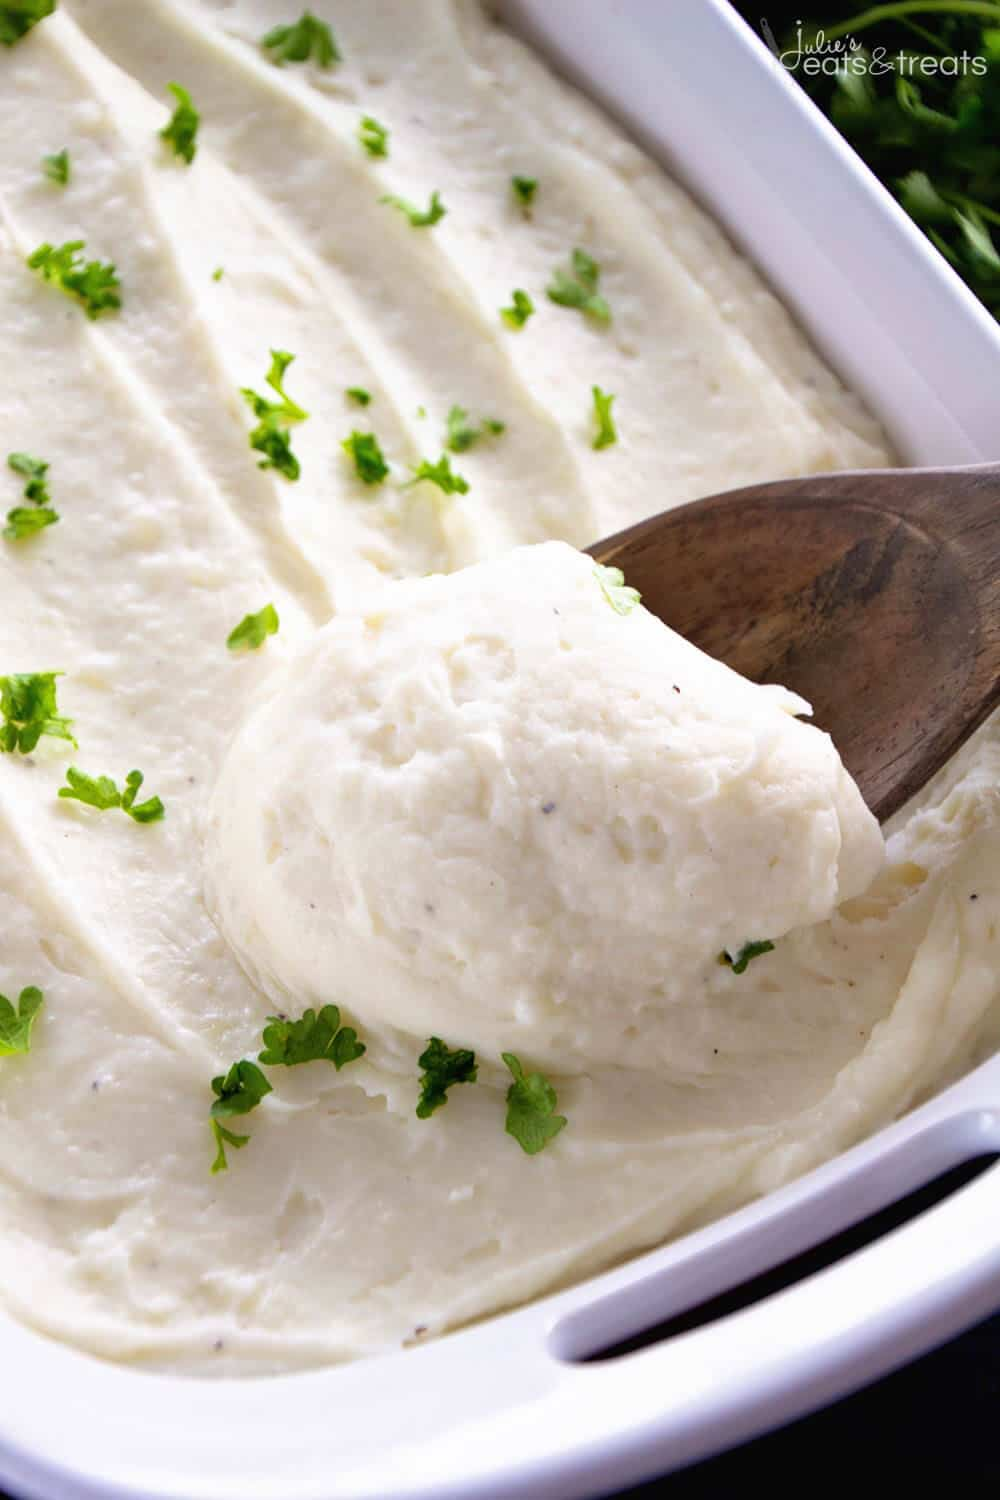 A spoonful of. mashed potatoes with cream cheese in a casserole dish topped with minced parsley.